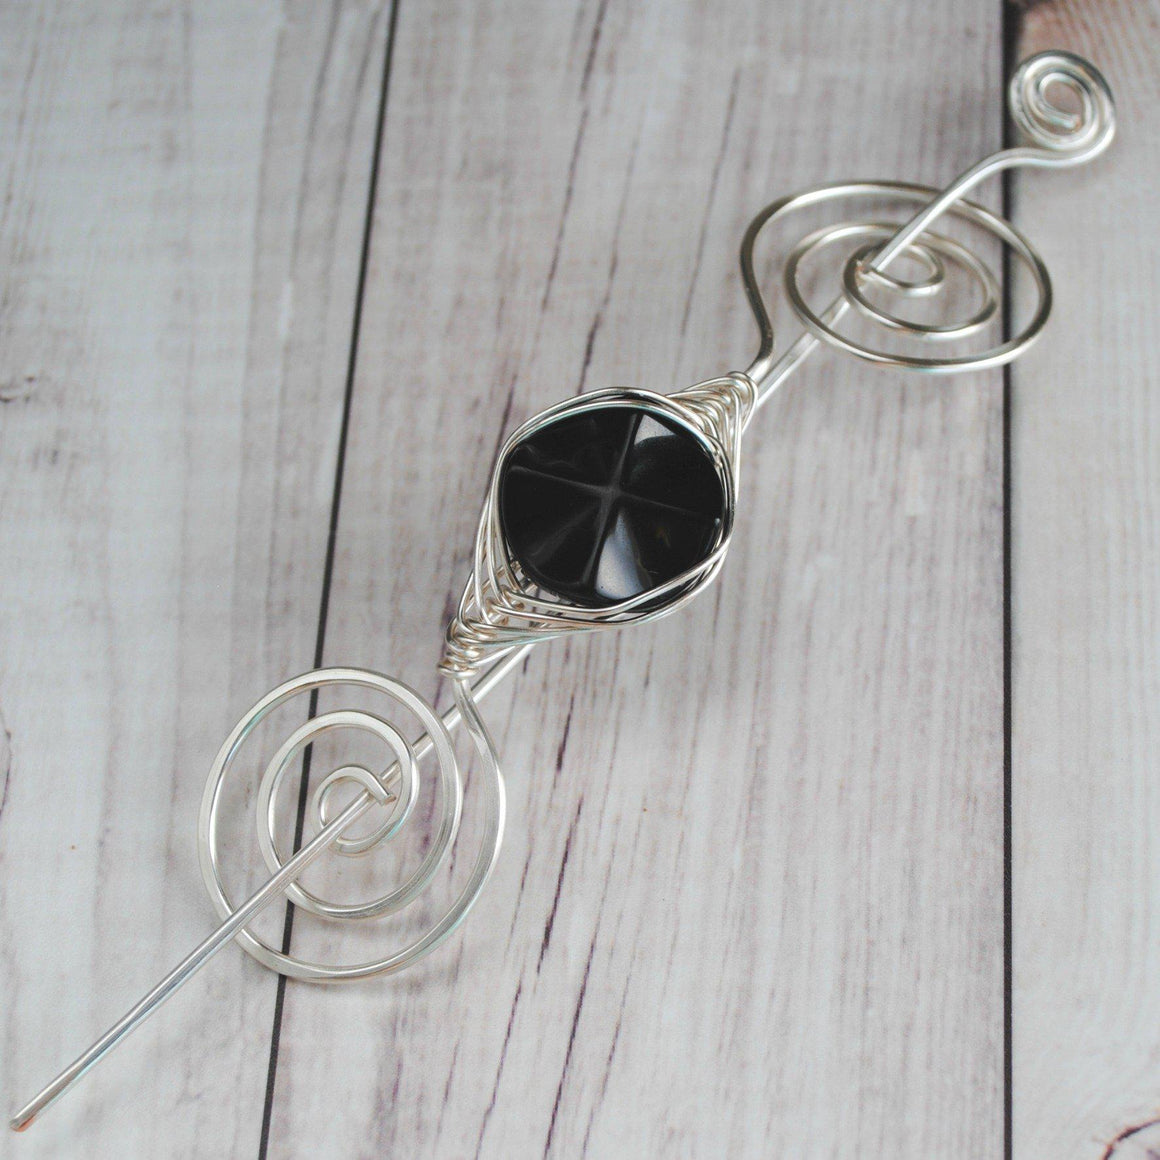 Shawl Pin, Black Glass Shawl Pin - Large Silver - Crafty Flutterby Creations